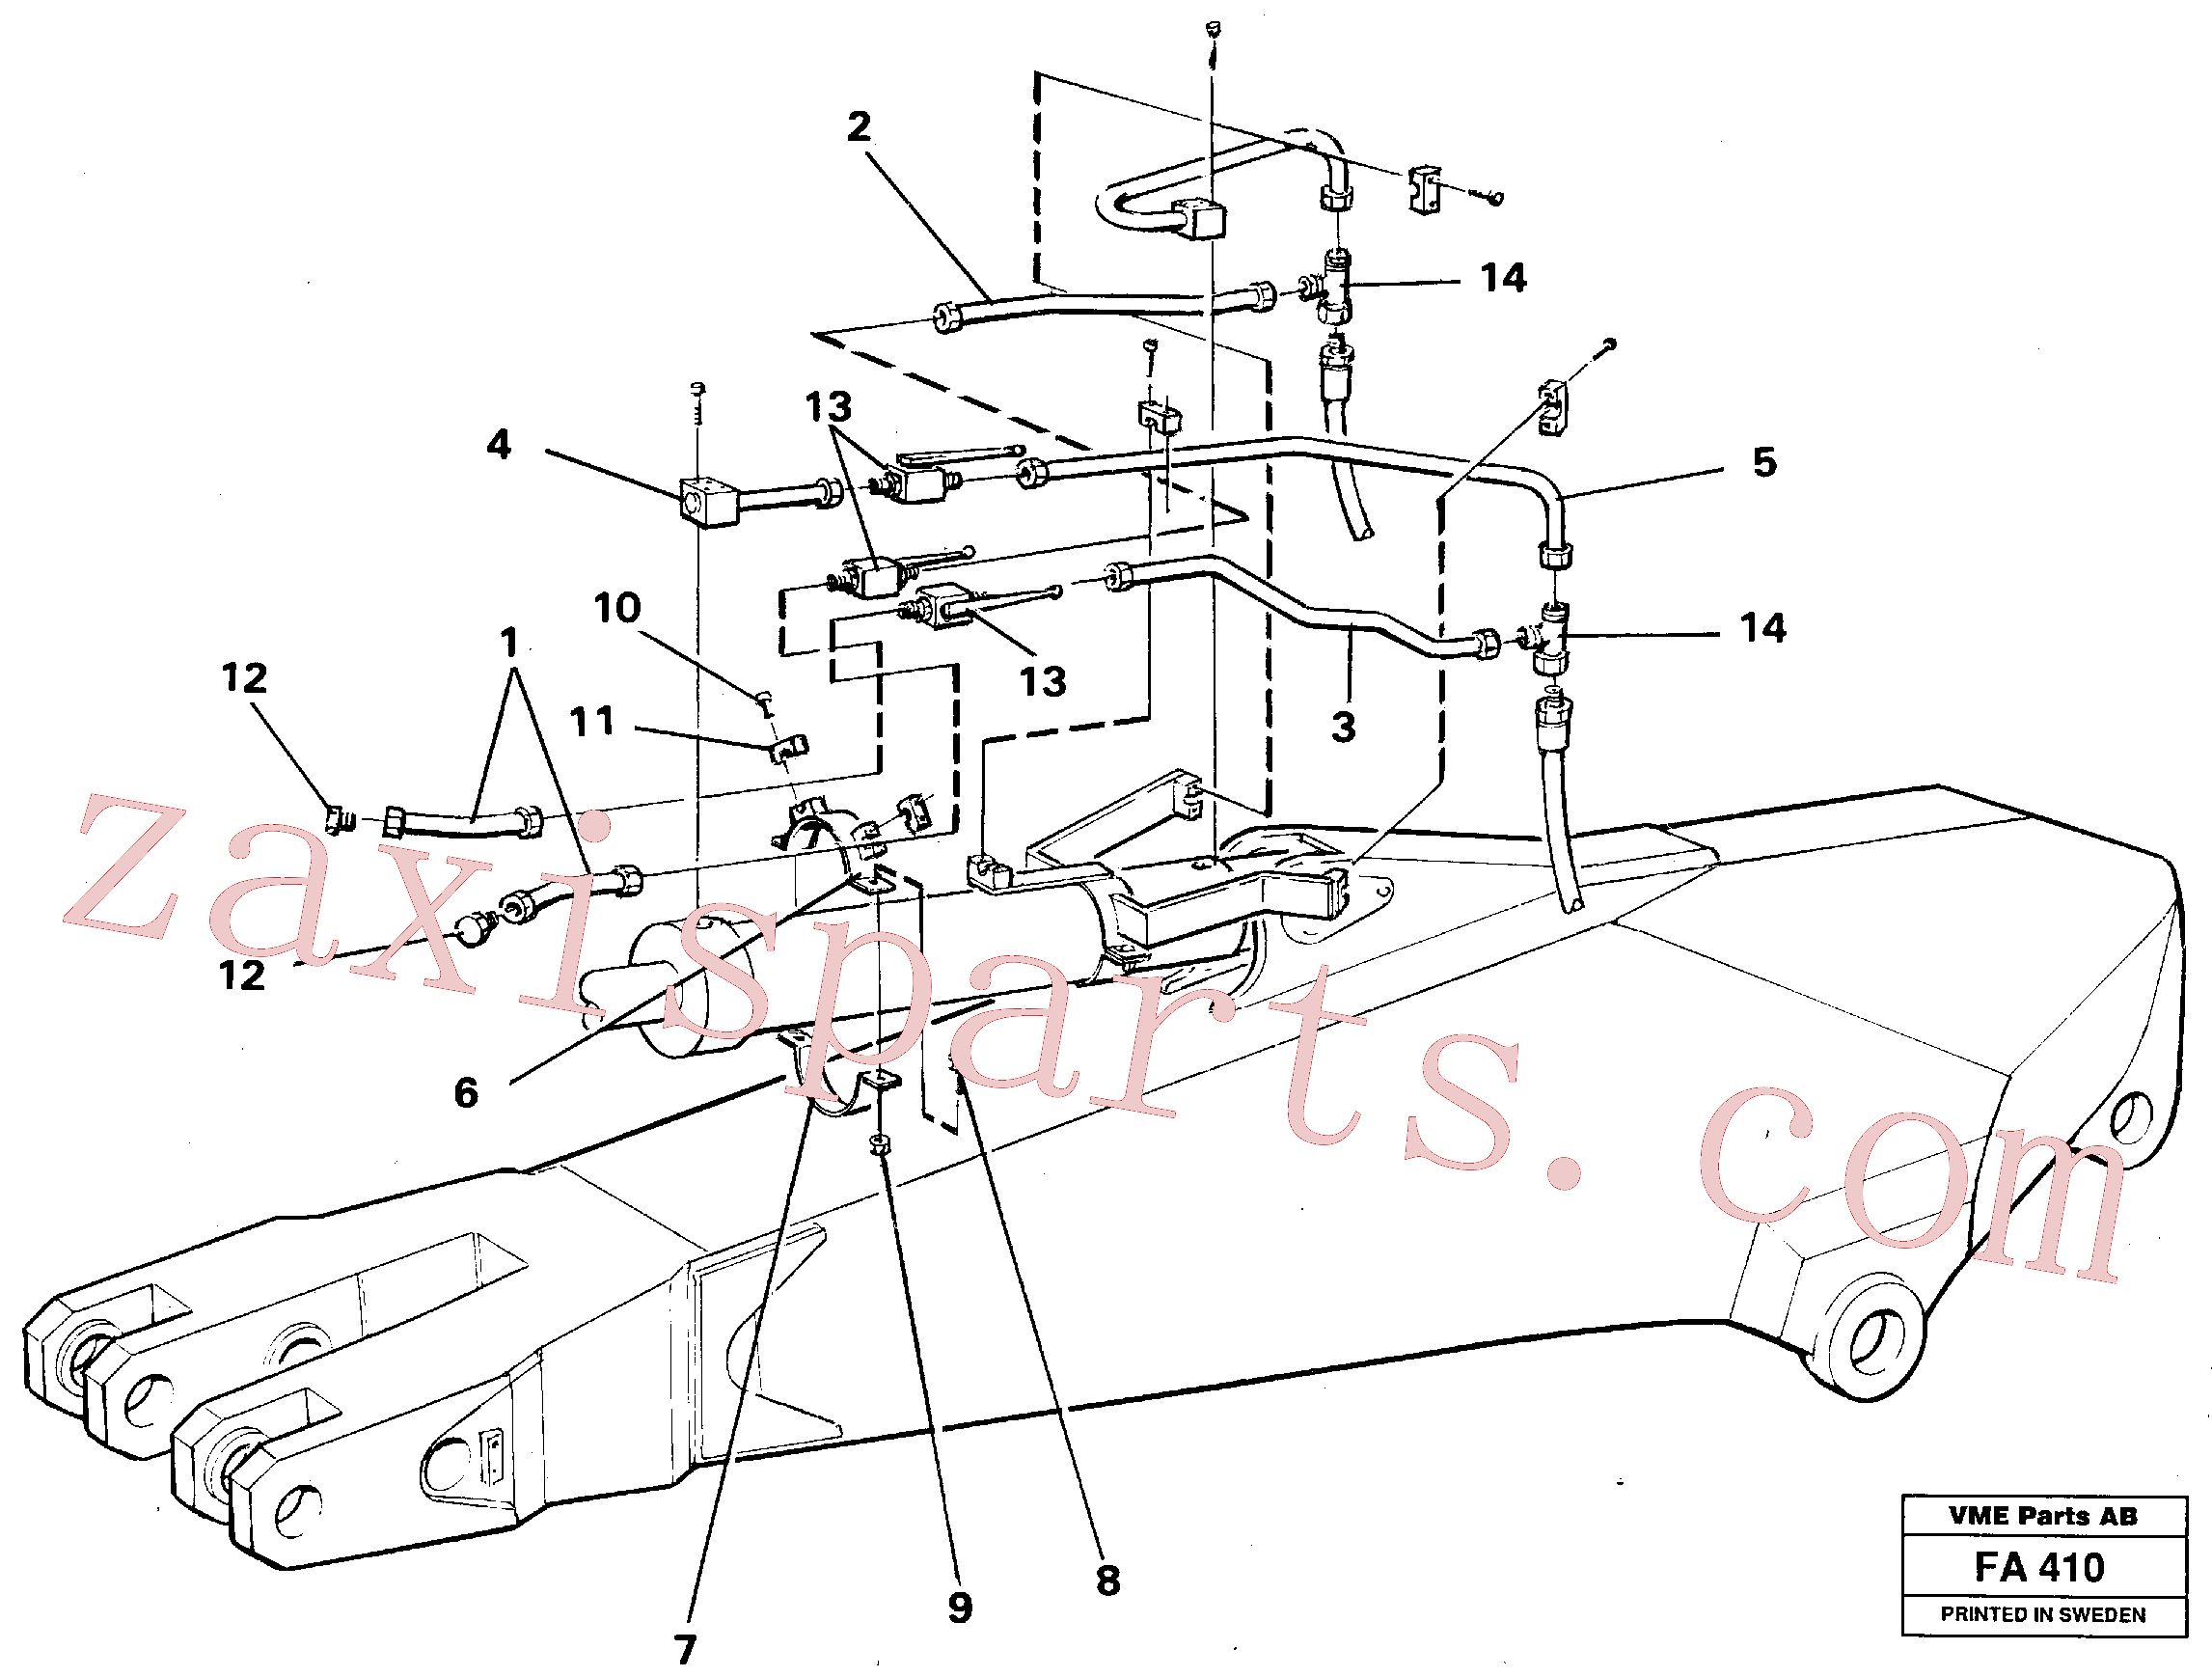 VOE14249975 for Volvo Parallel connected grab hydraulics incl. shut-offcocks on dipper arms.(FA410 assembly)